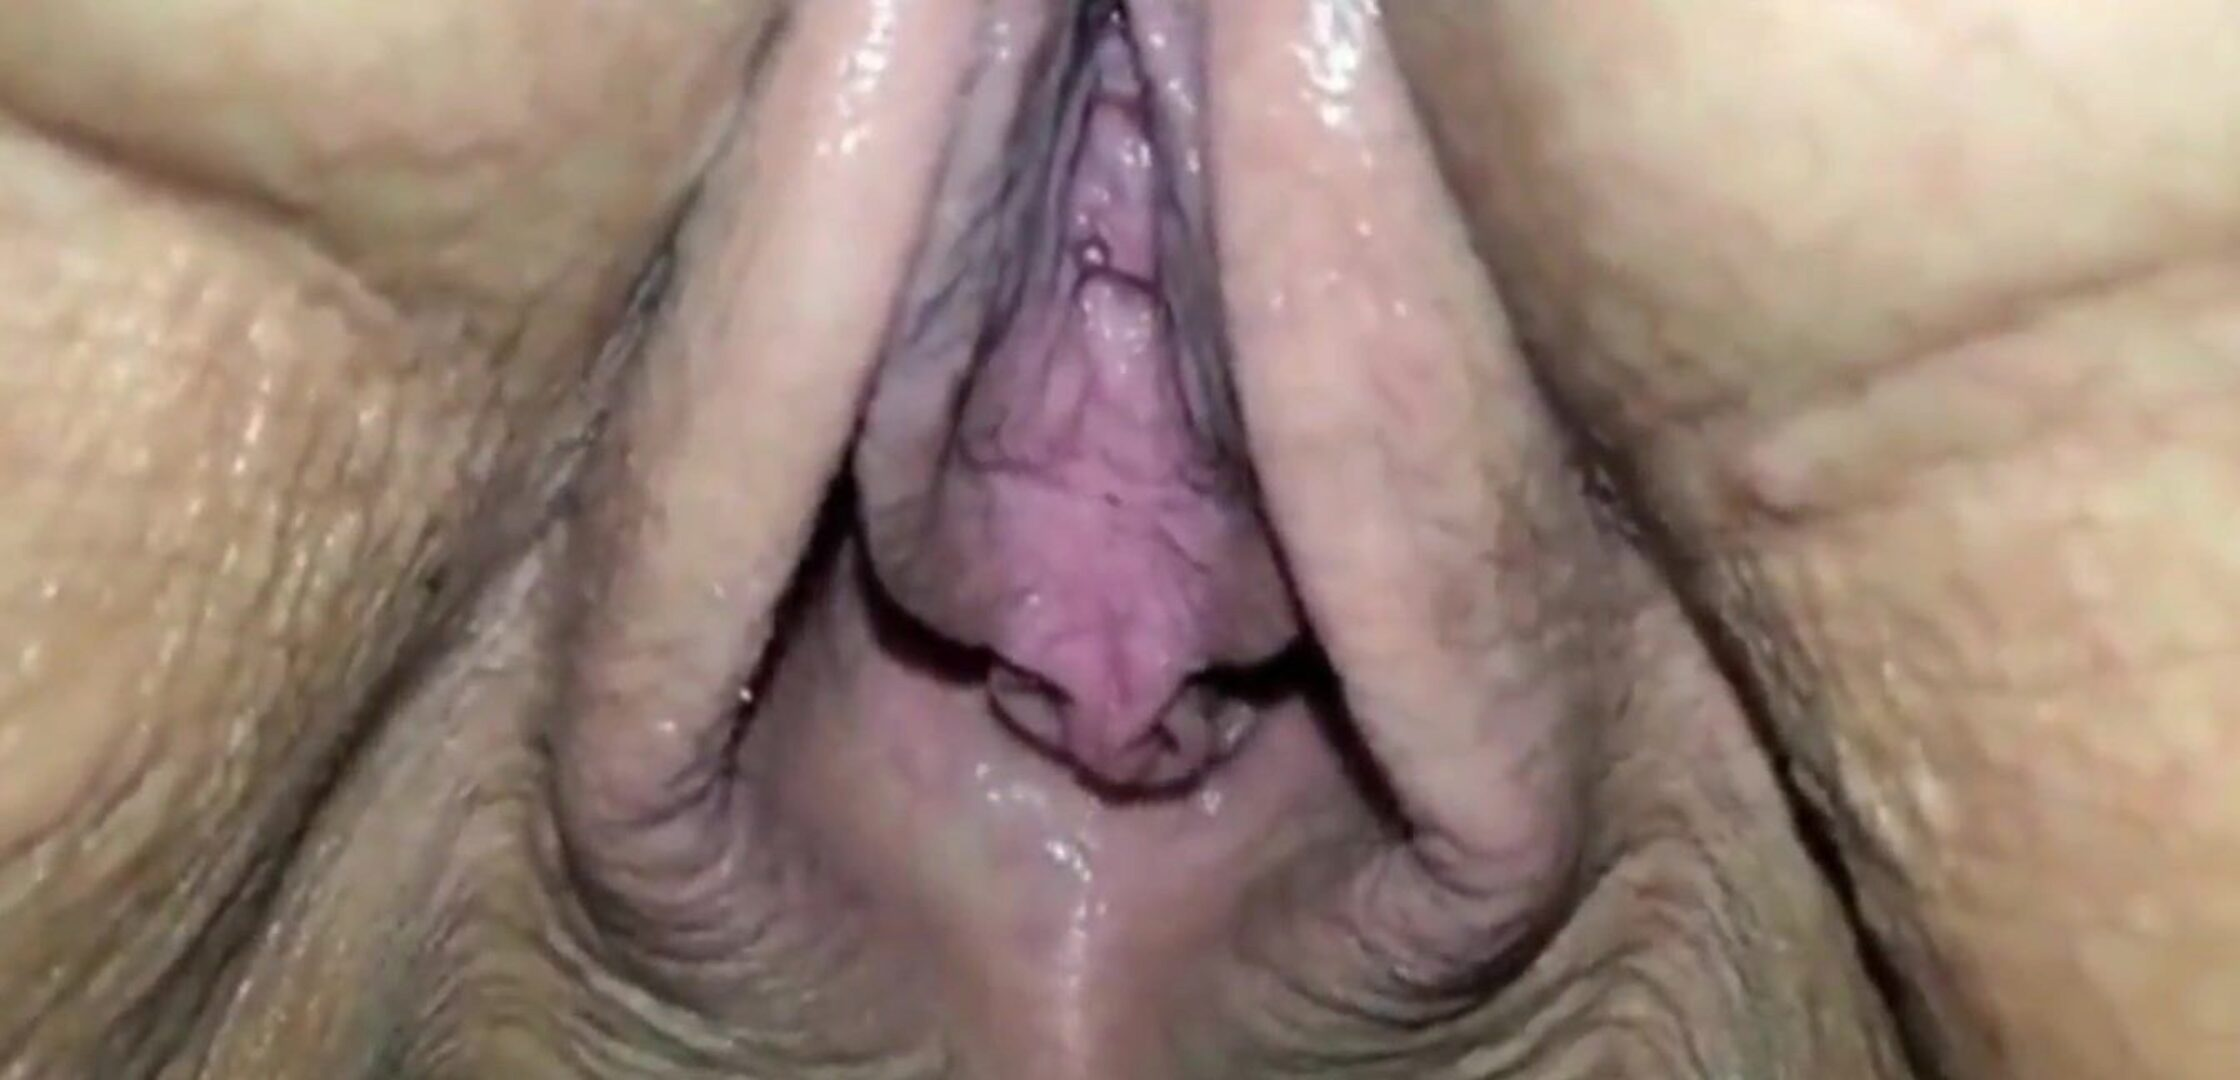 80yo Granny Luisa Dripping Cream, Free HD Porn ab: xHamster Watch 80yo Granny Luisa Dripping Cream video on xHamster, the greatest HD hookup tube site with tons of free Grandma Mature & Granny Pornhub porno videos